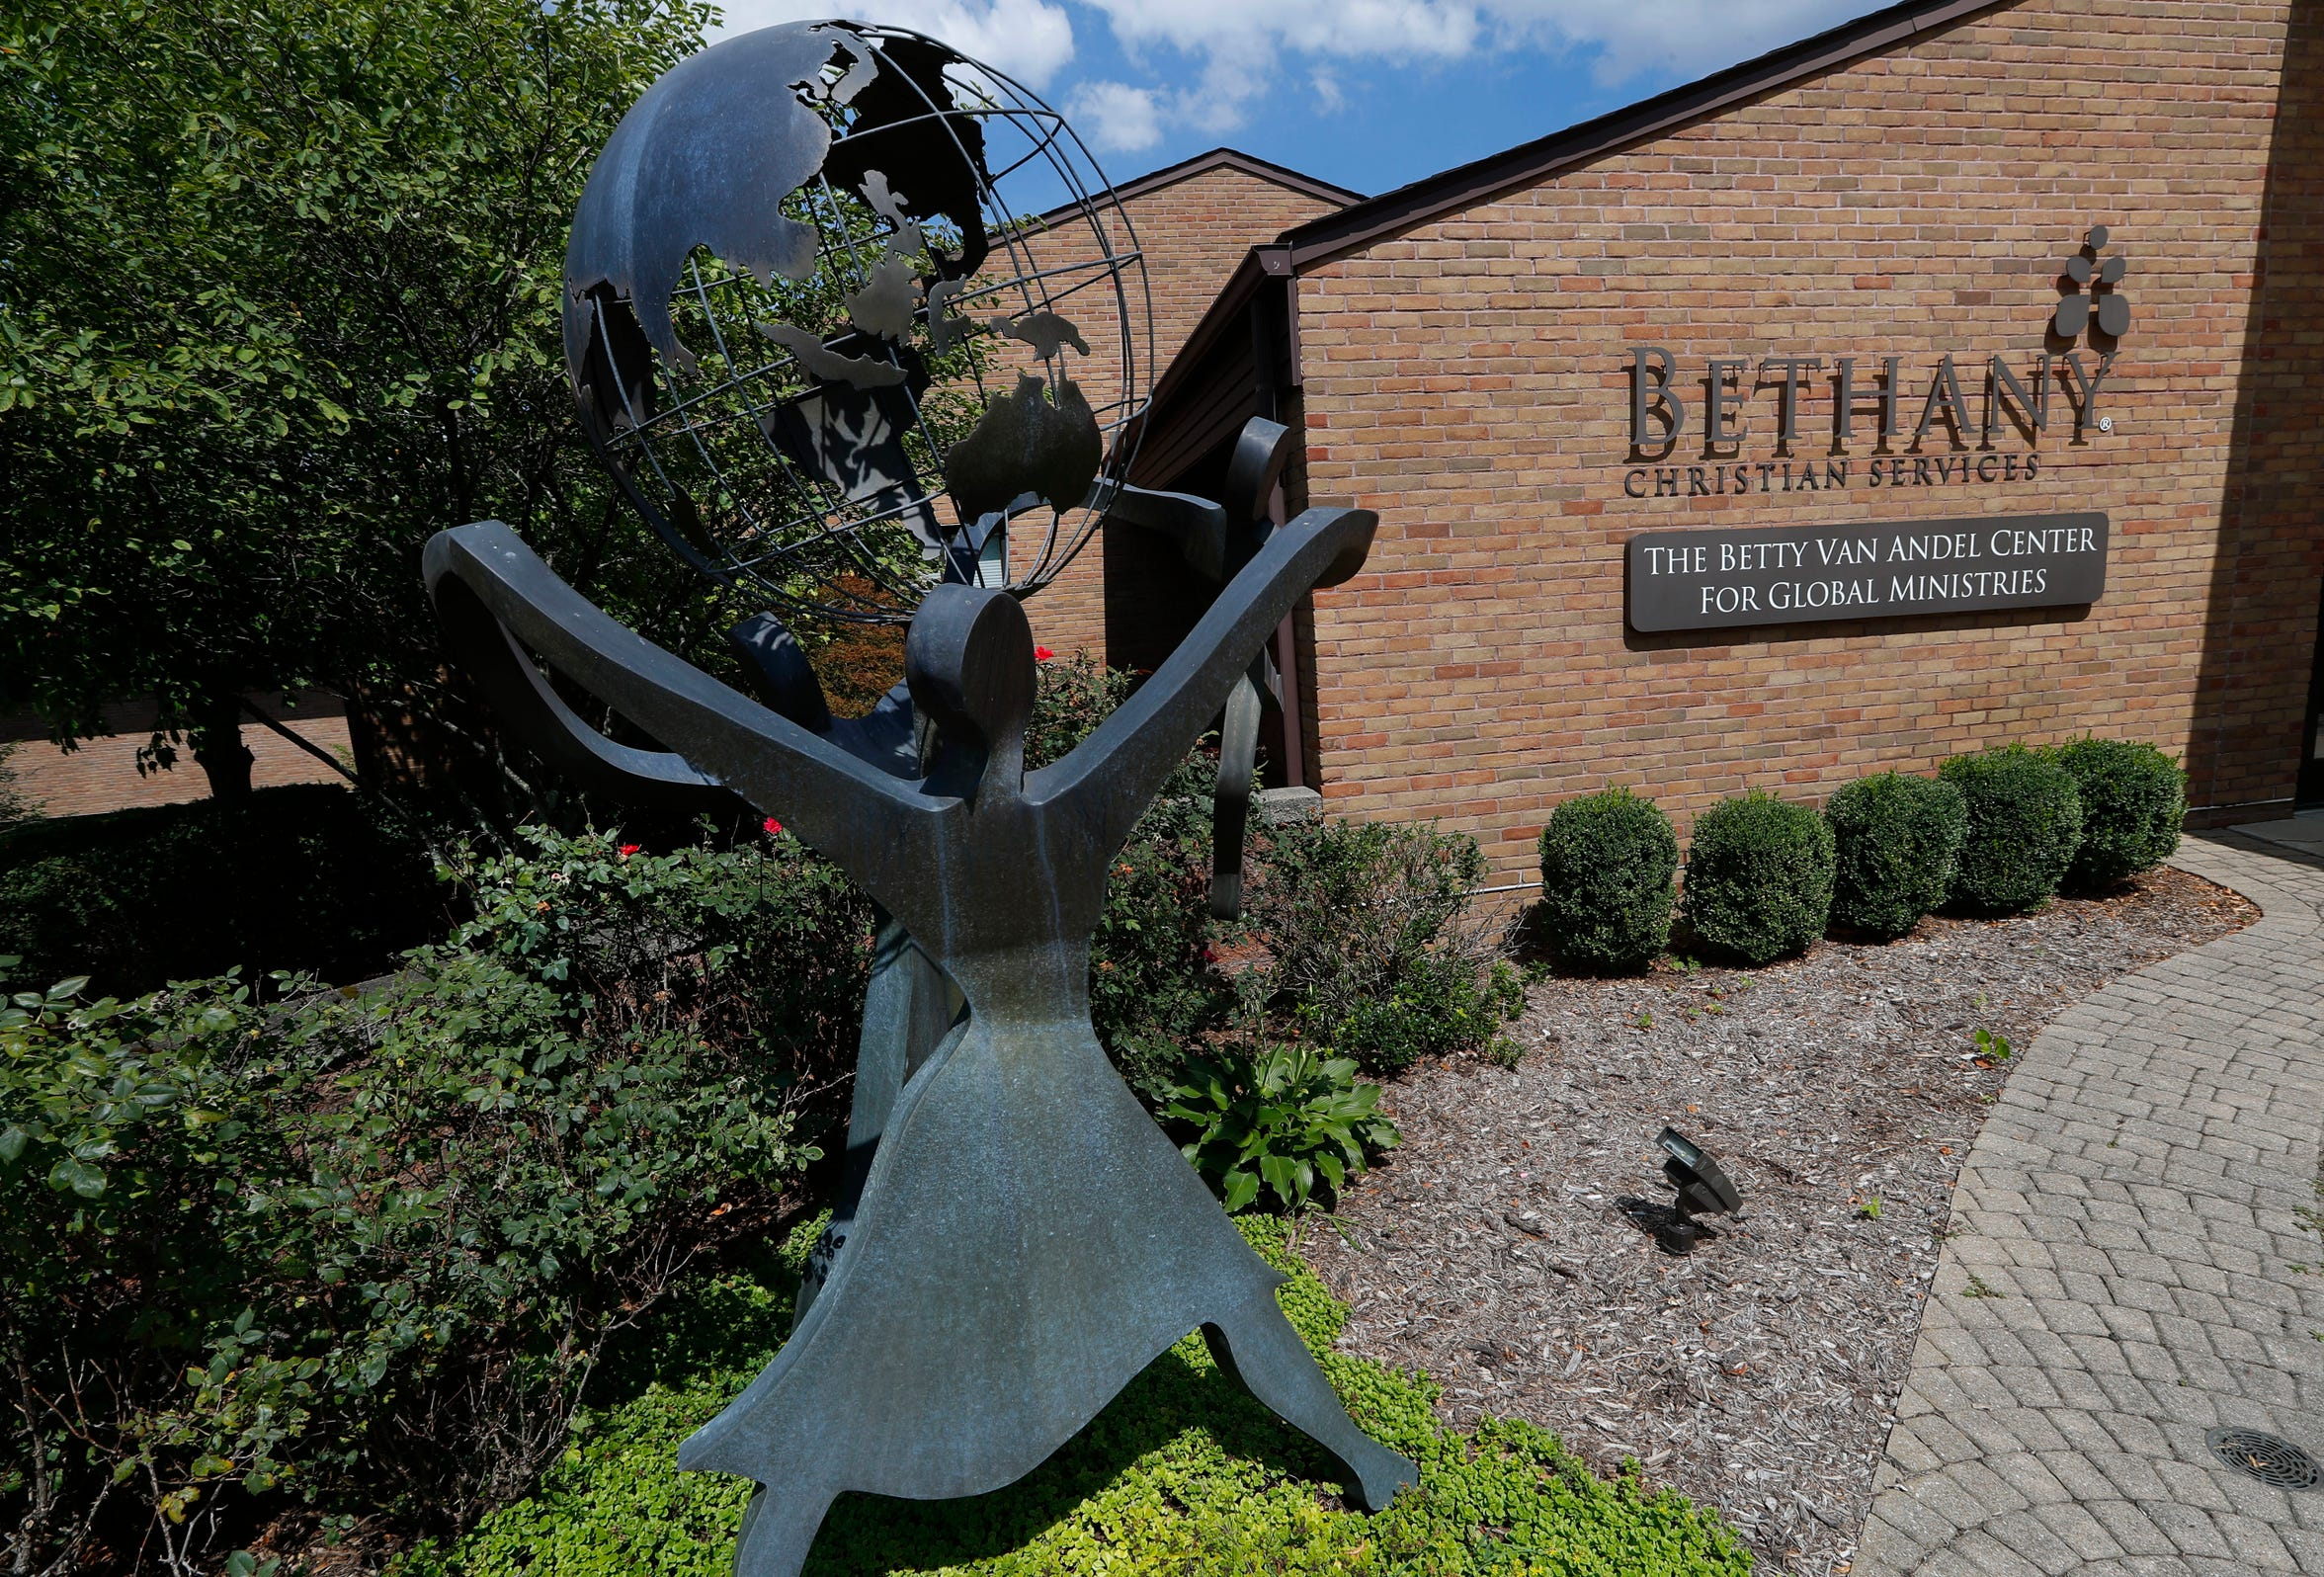 This Thursday, Aug. 23, 2018 photo shows the Bethany Christian Services in Grand Rapids, Mich. Bethany is one of the nation's largest adoption agencies. (AP Photo/Paul Sancya)